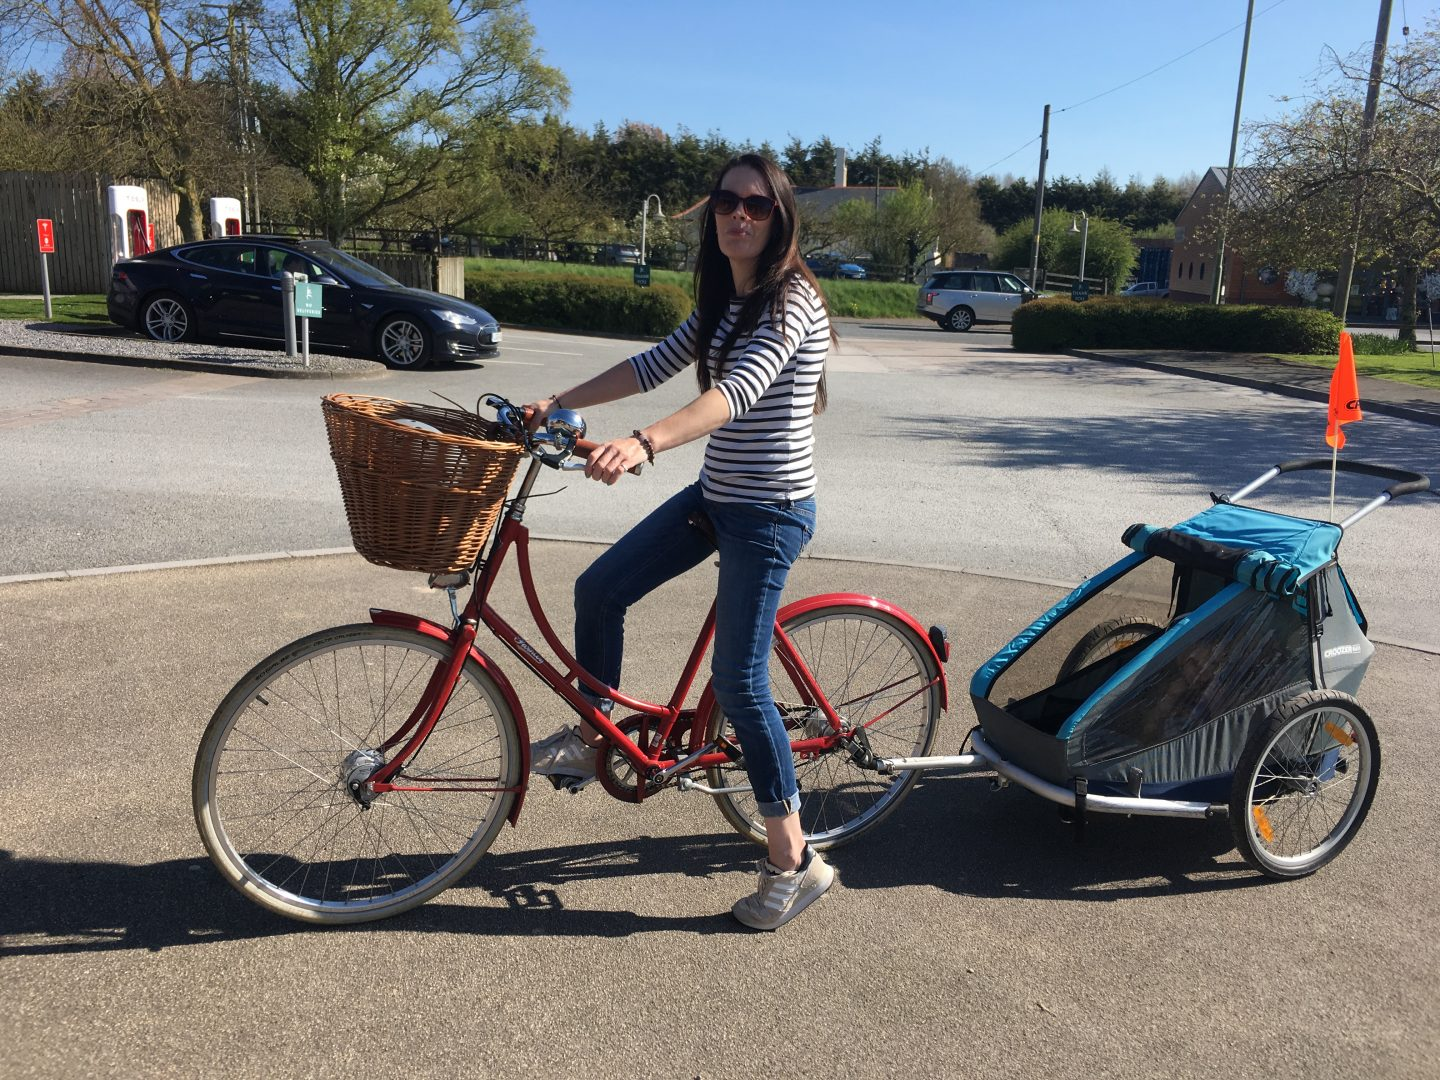 slowing down the holiday pace with a cycle holiday